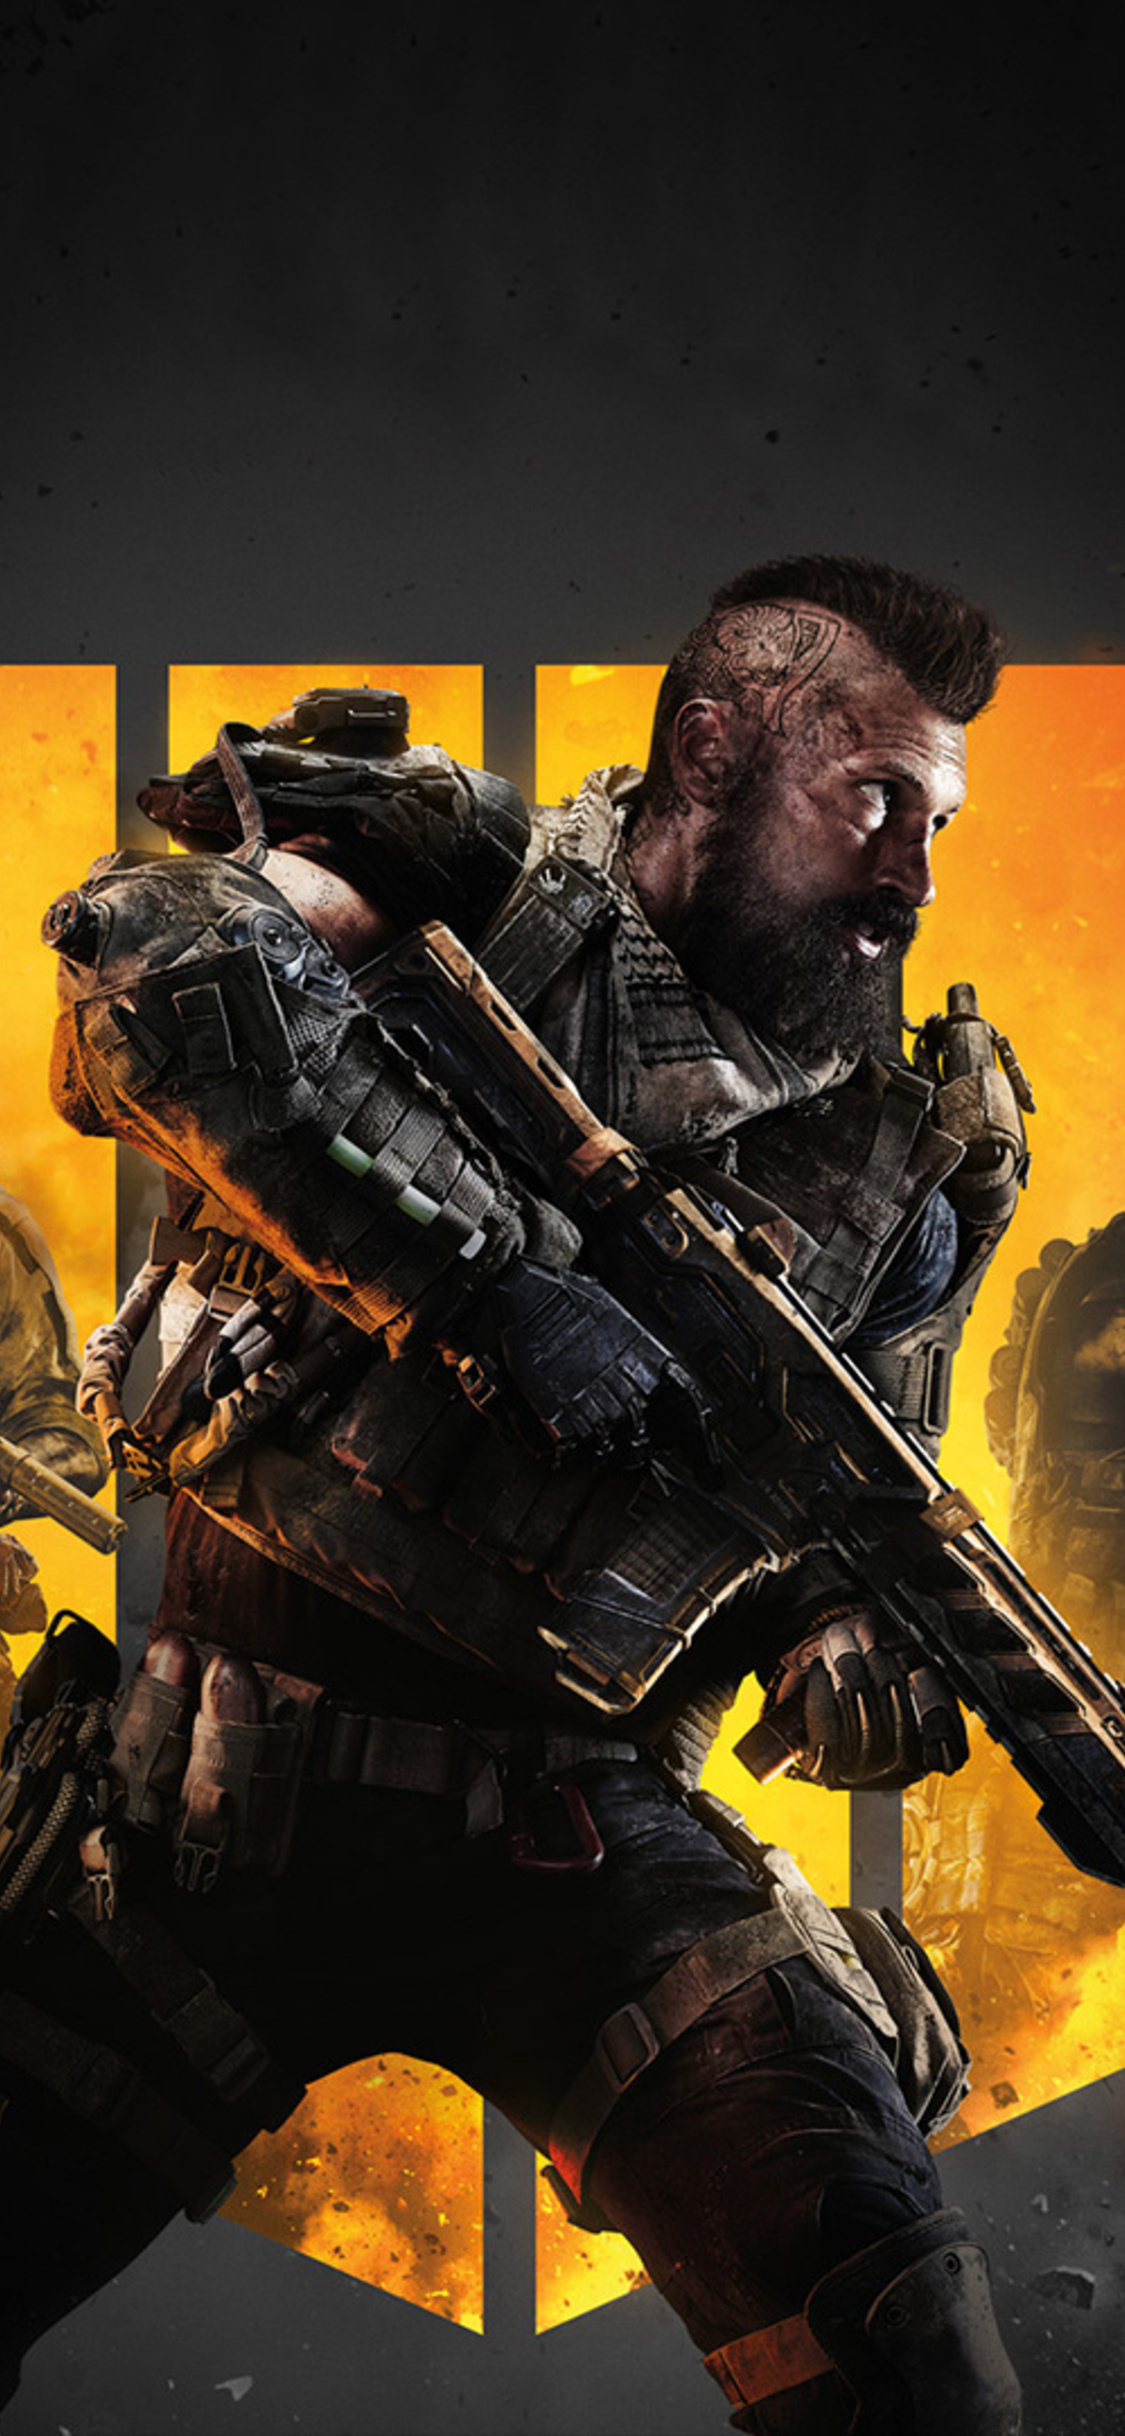 Download Call Of Duty Black Ops 4 Iphone X Wallpaper